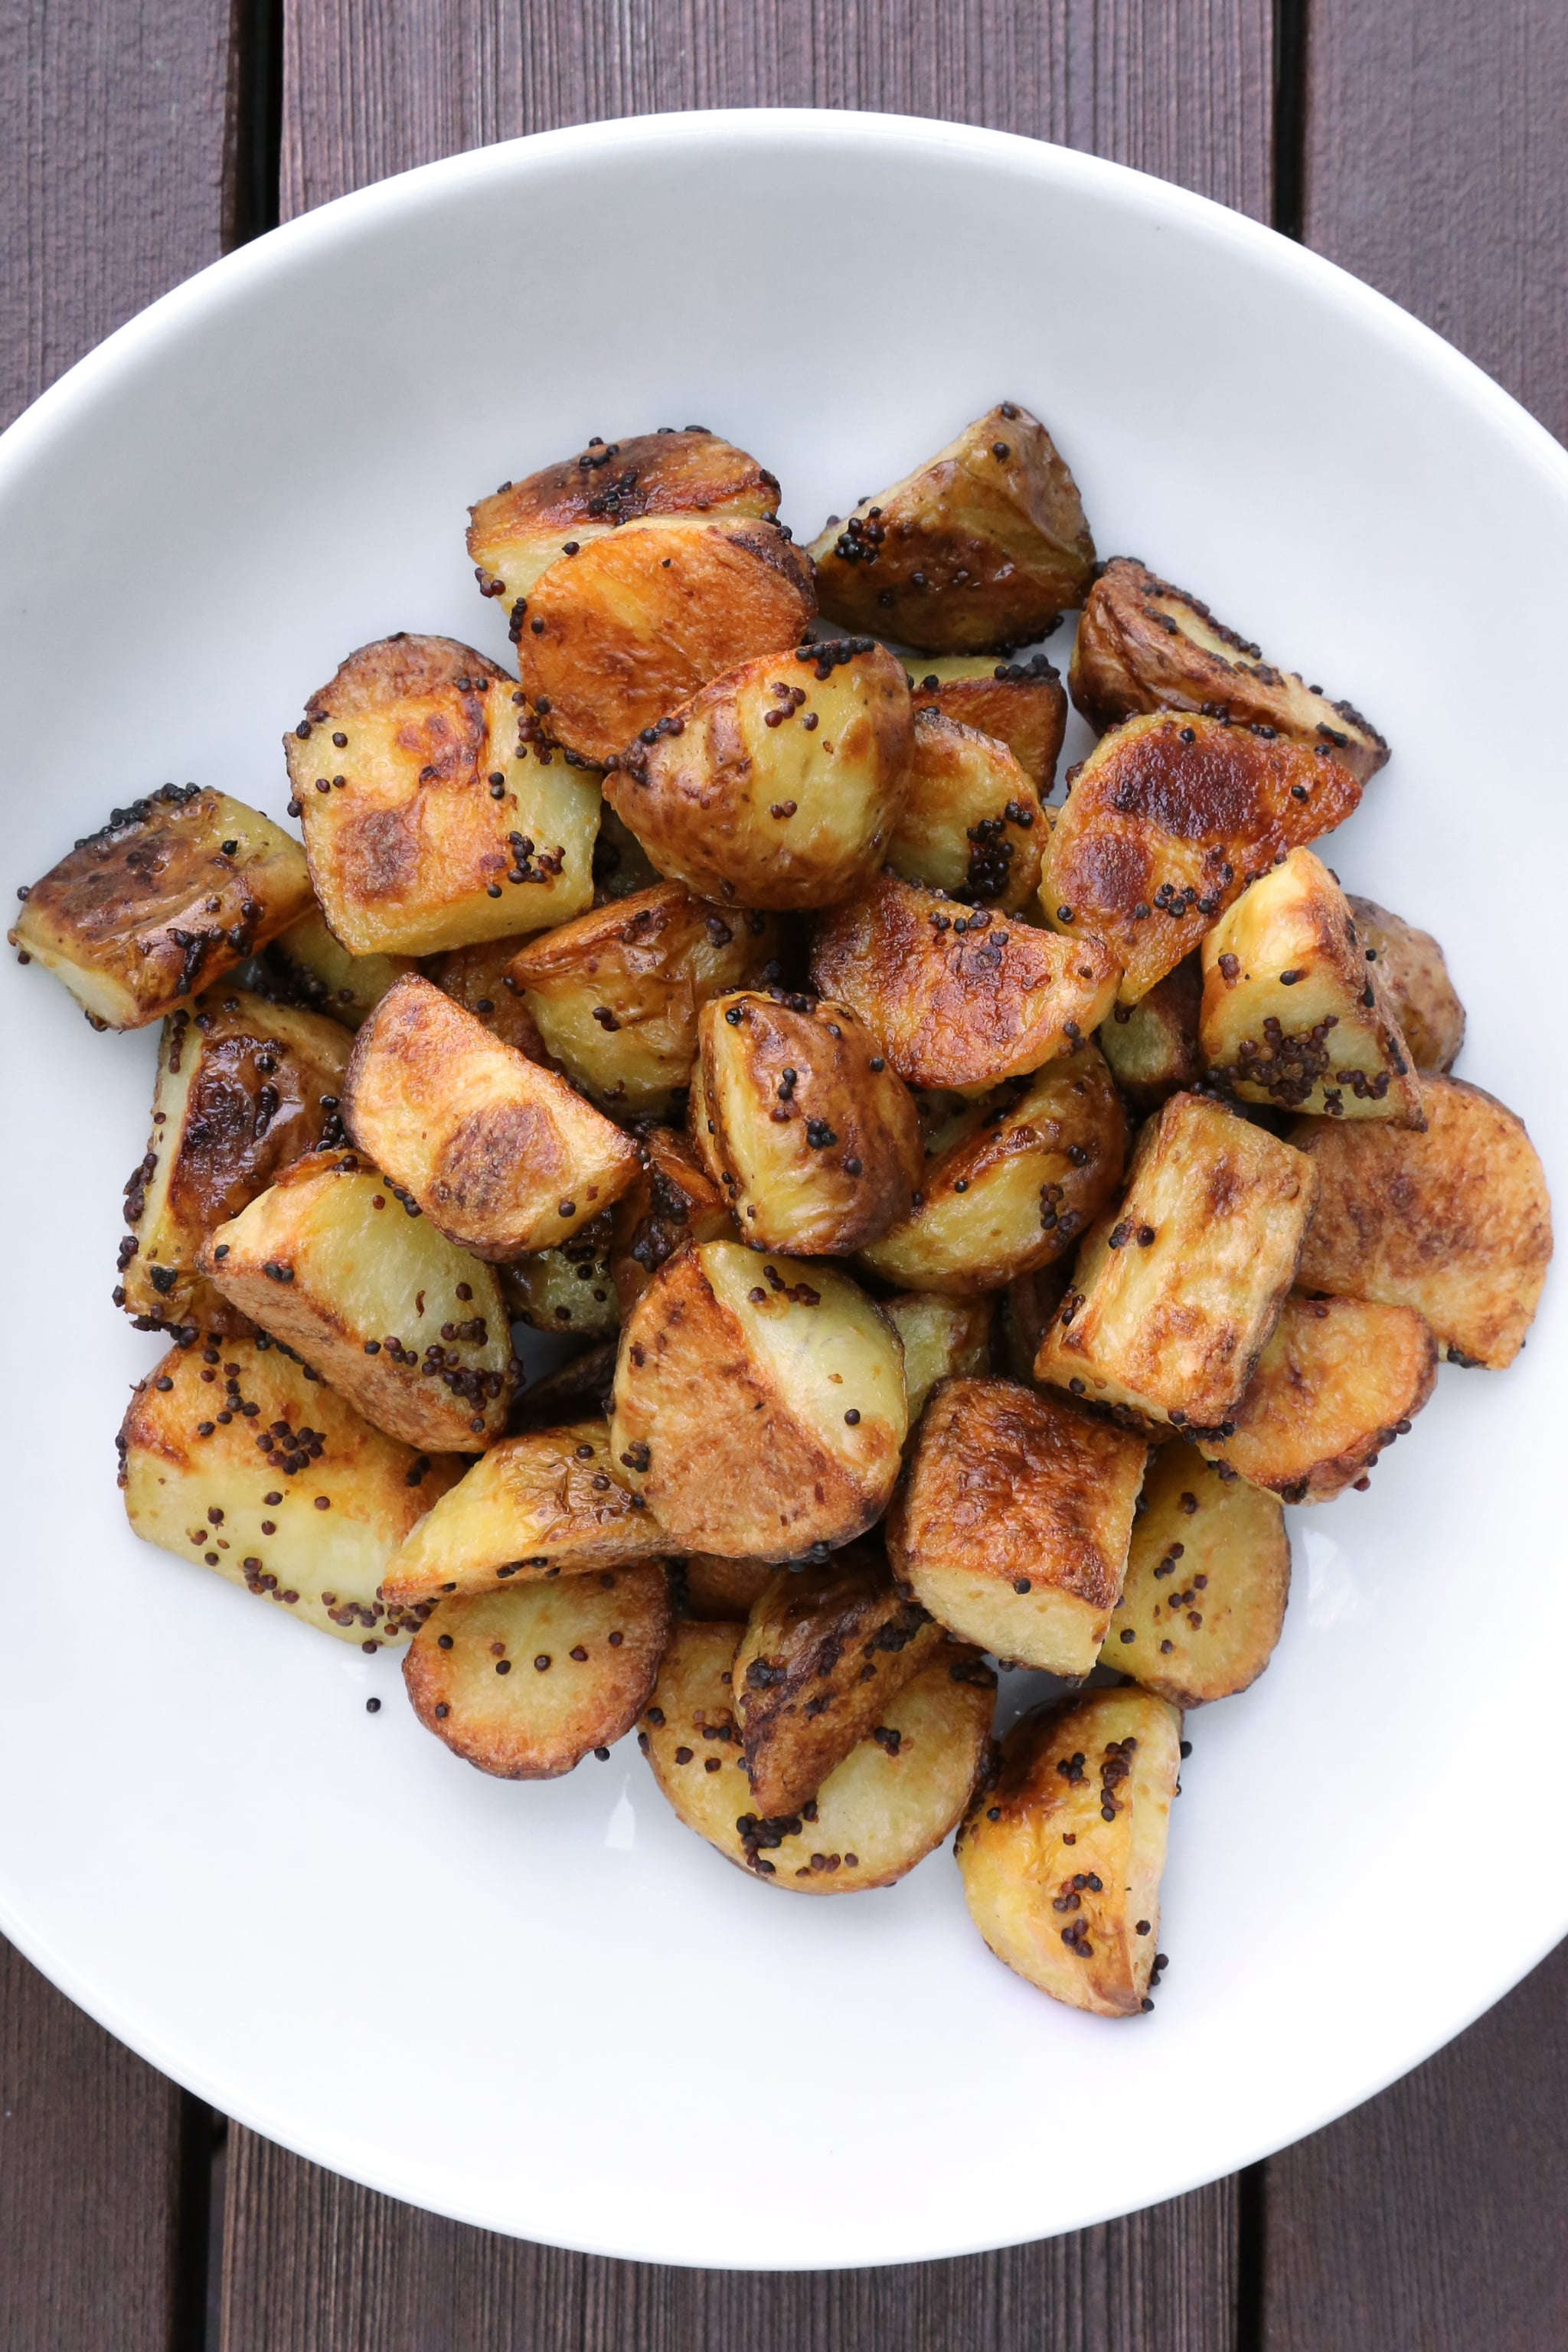 Hands Down the Best Way to Roast Potatoes